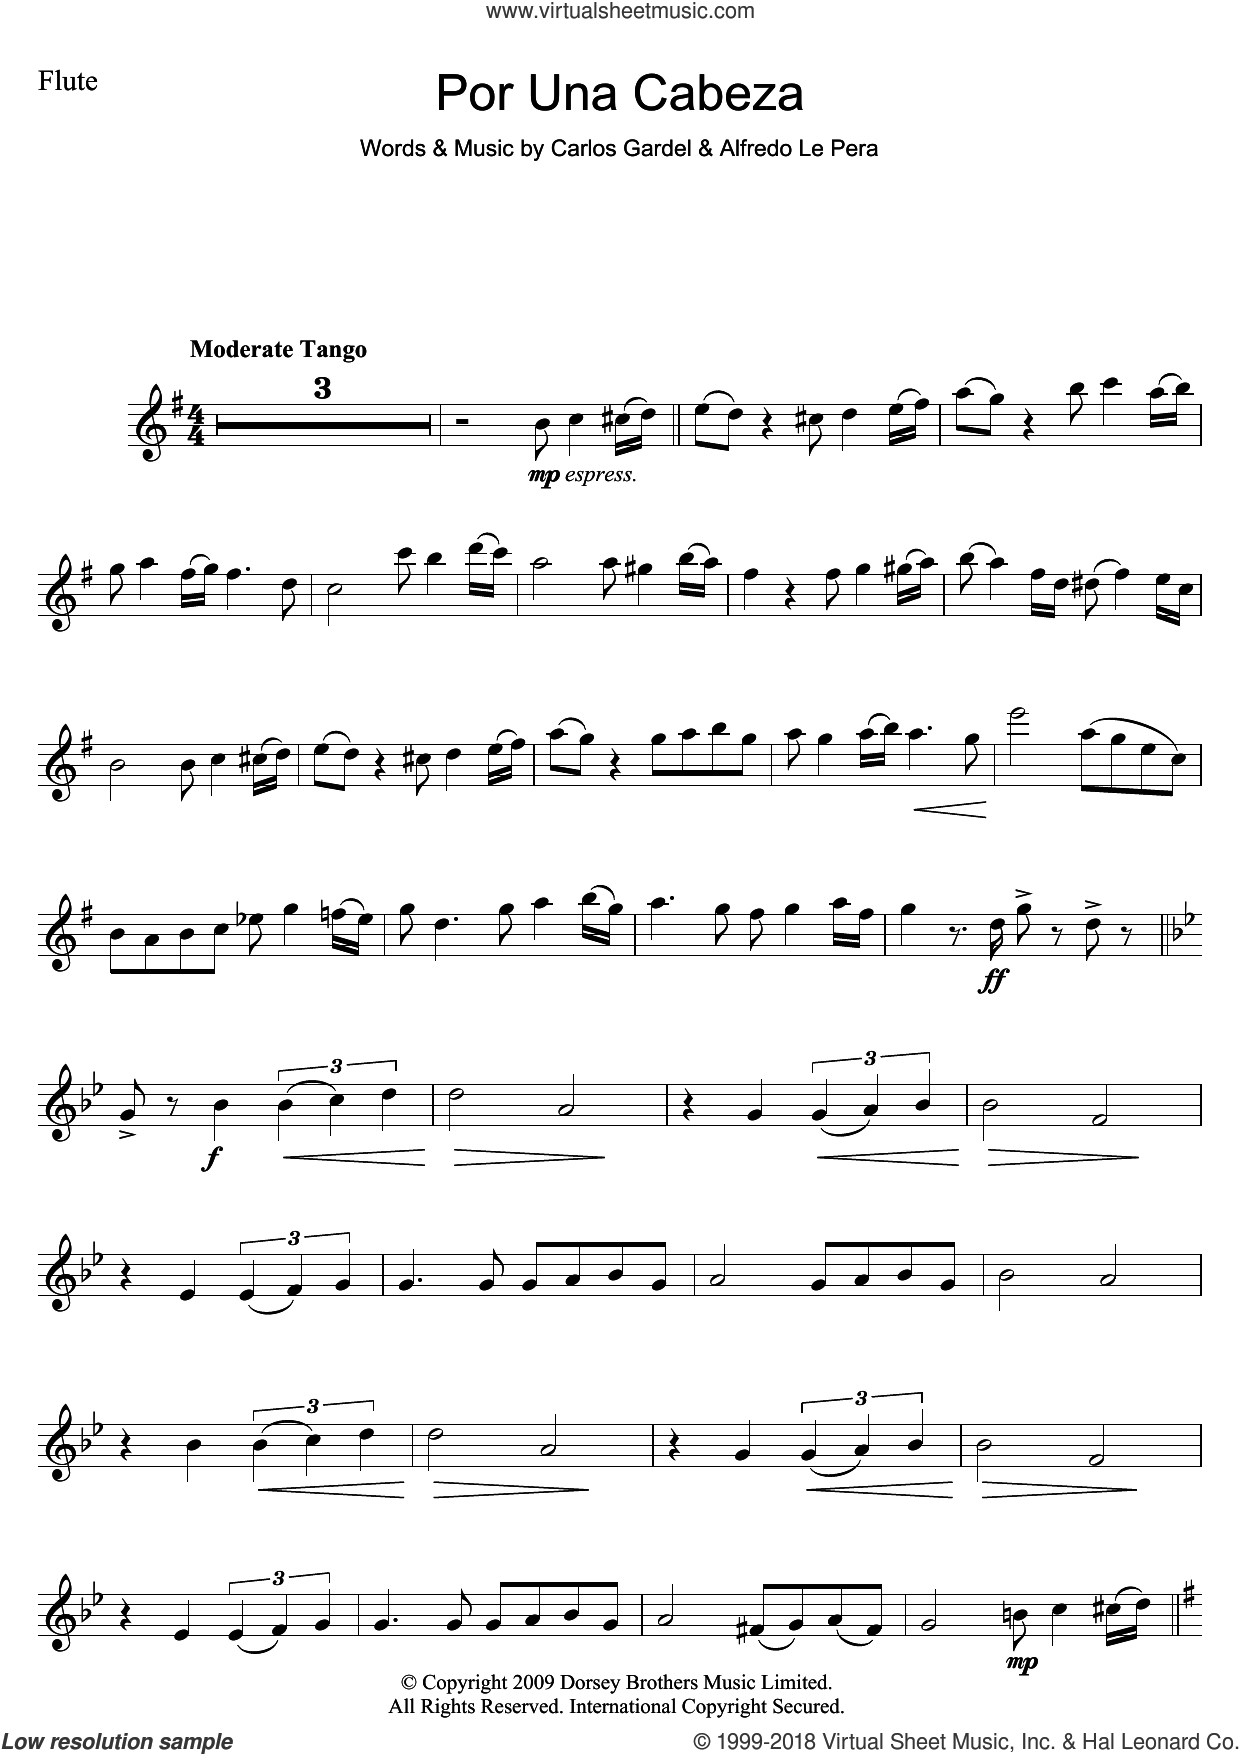 Por Una Cabeza sheet music for flute solo by Carlos Gardel and Alfredo Le Pera, intermediate skill level